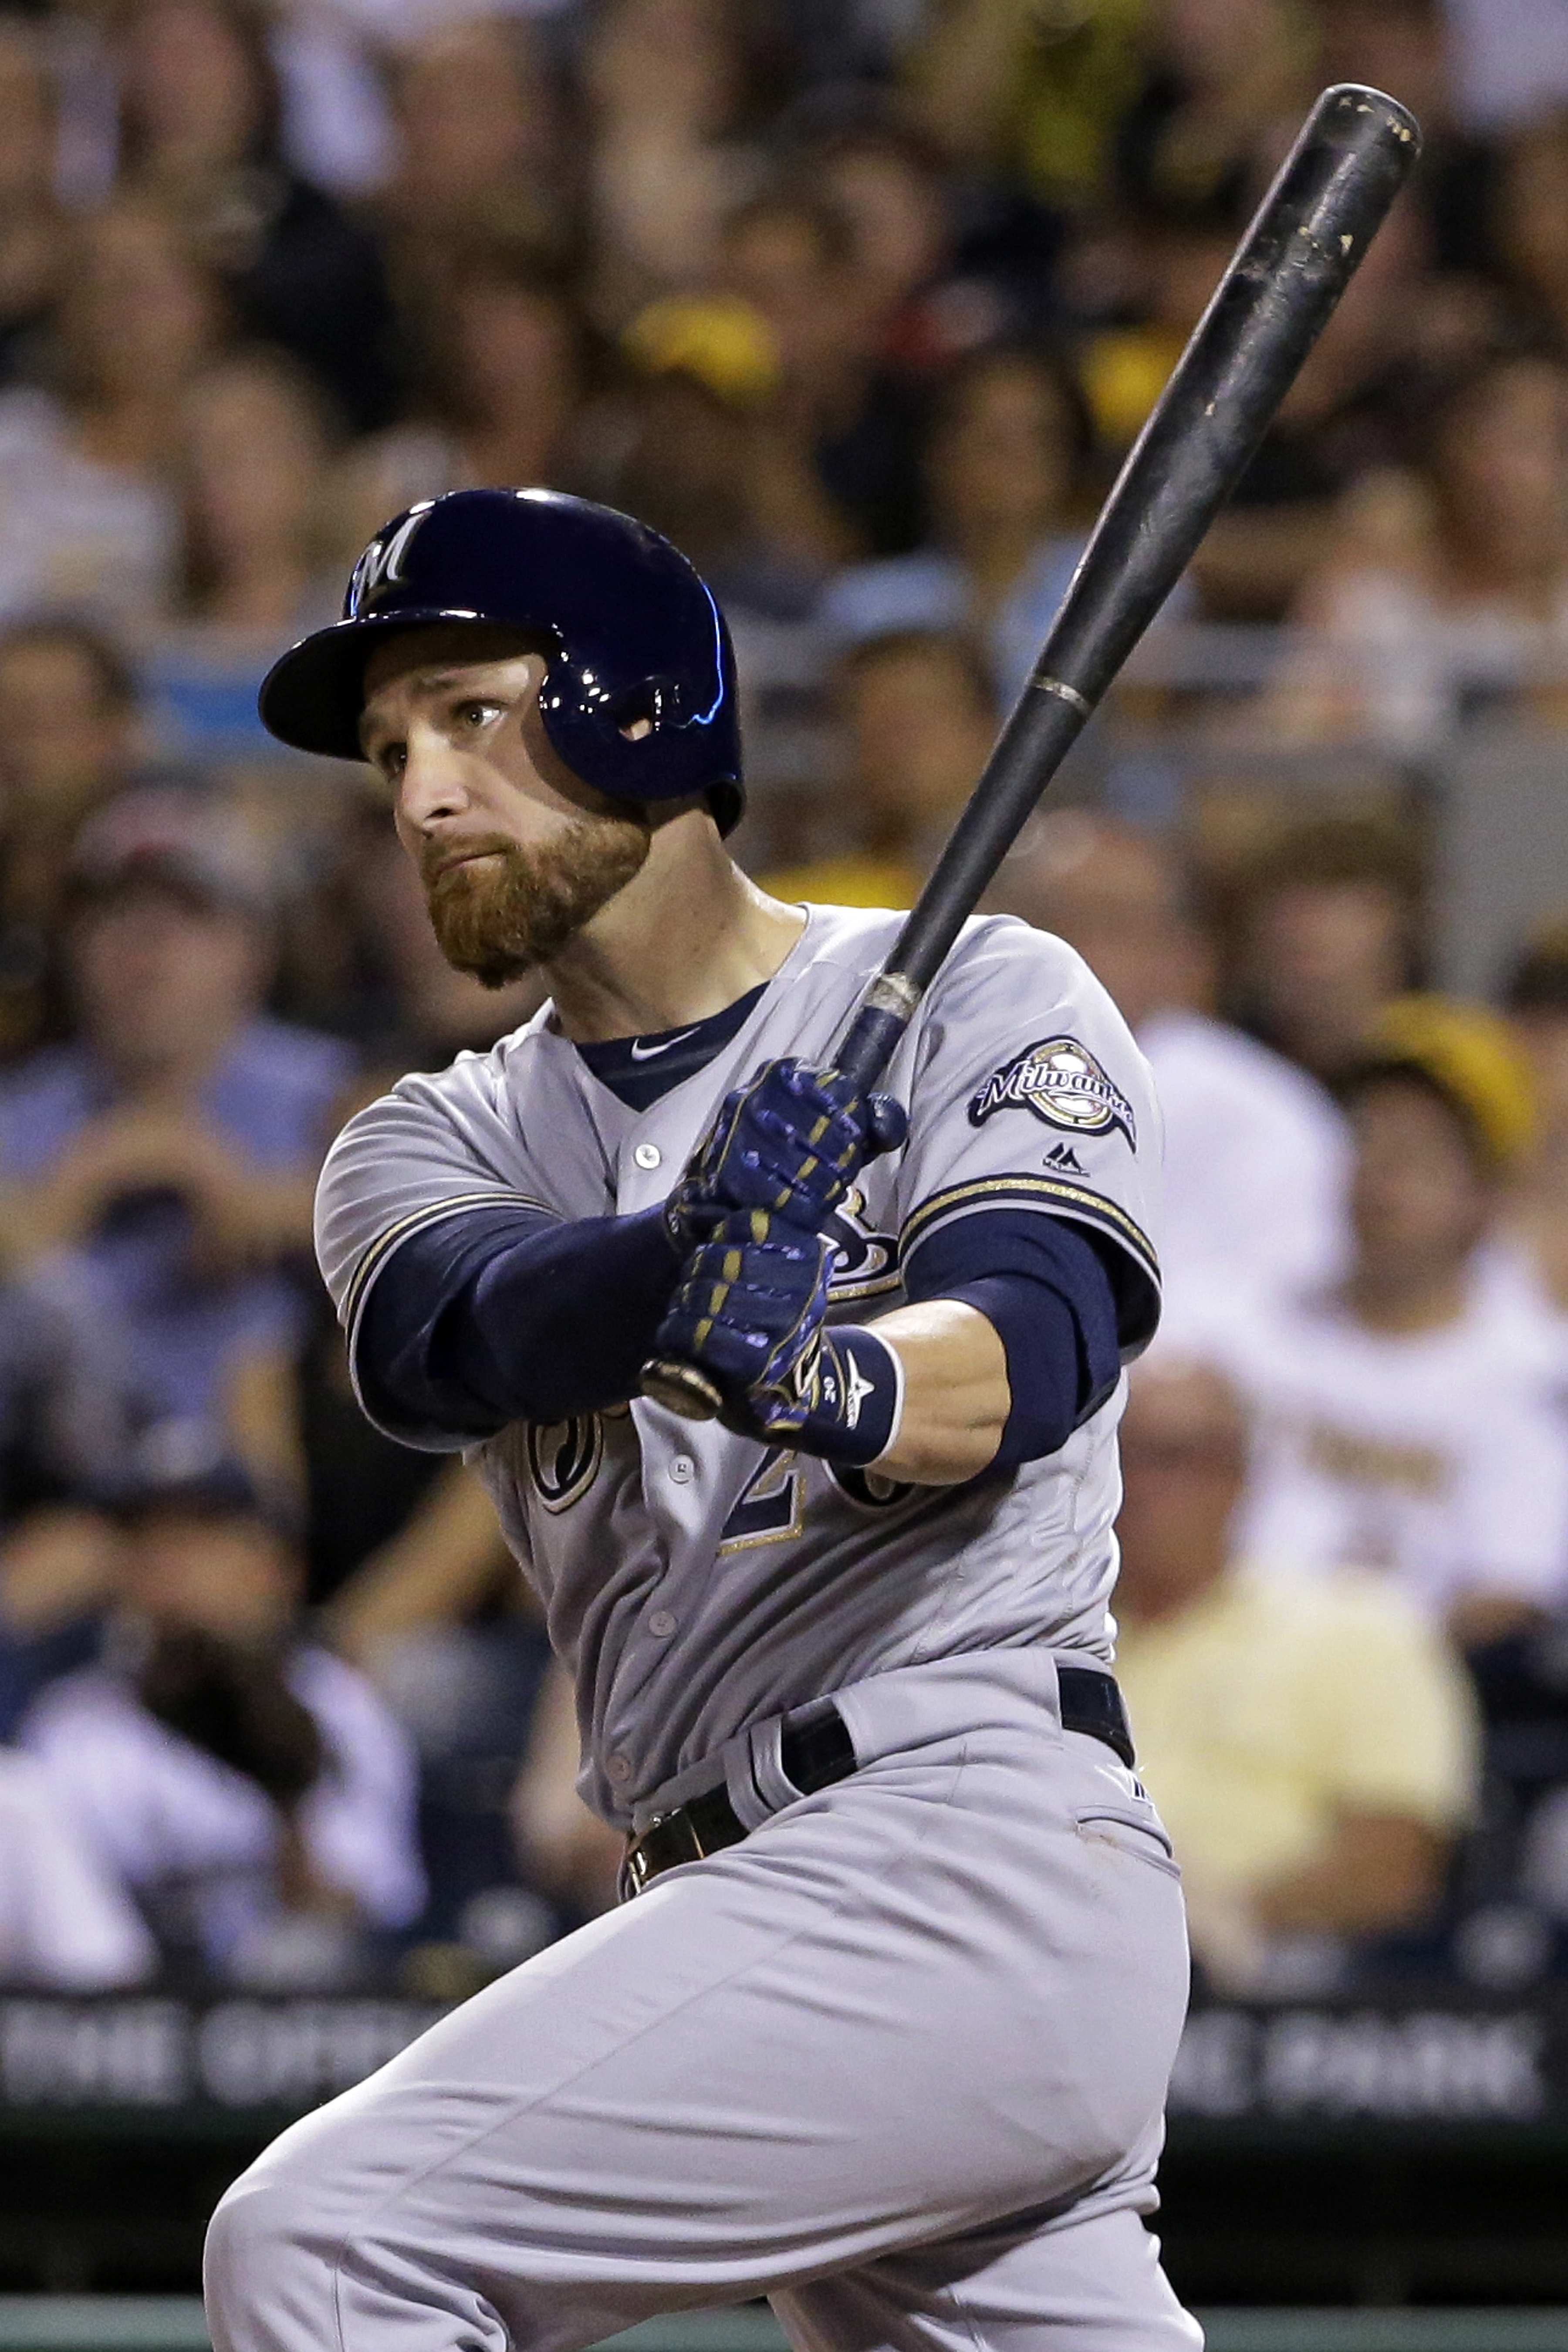 Milwaukee Brewers' Jonathan Lucroy drives in two runs with a single off Pittsburgh Pirates relief pitcher A.J. Schugel in the sixth inning of a baseball game in Pittsburgh, Wednesday, July 20, 2016. (AP Photo/Gene J. Puskar)